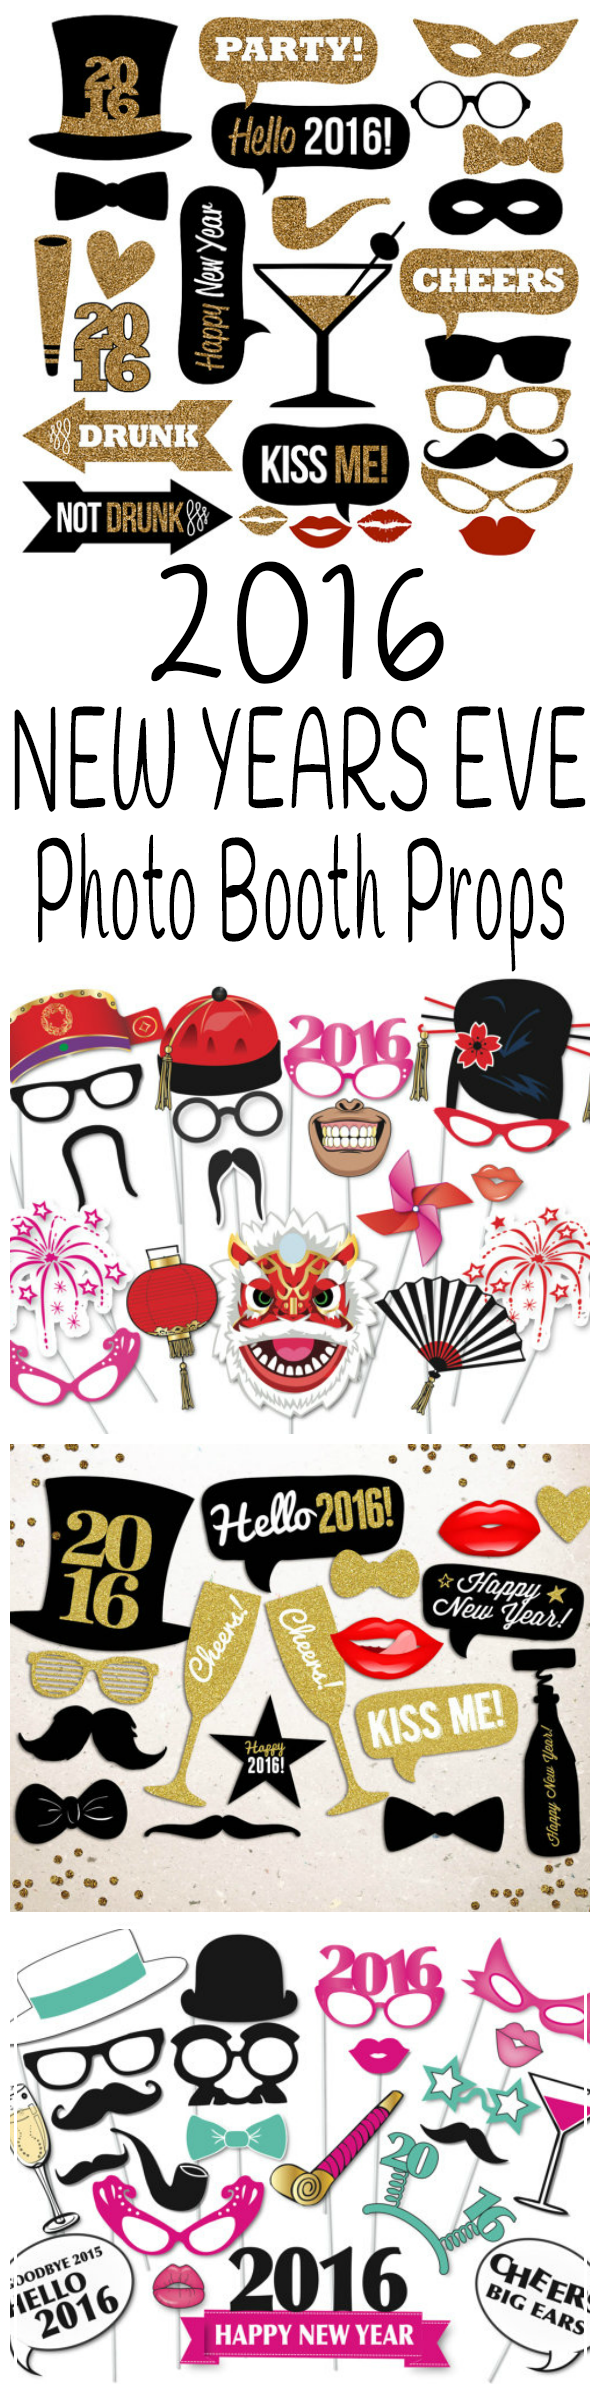 Ring in the new year with these fun and silly 2016 New Years Eve photo booth props!